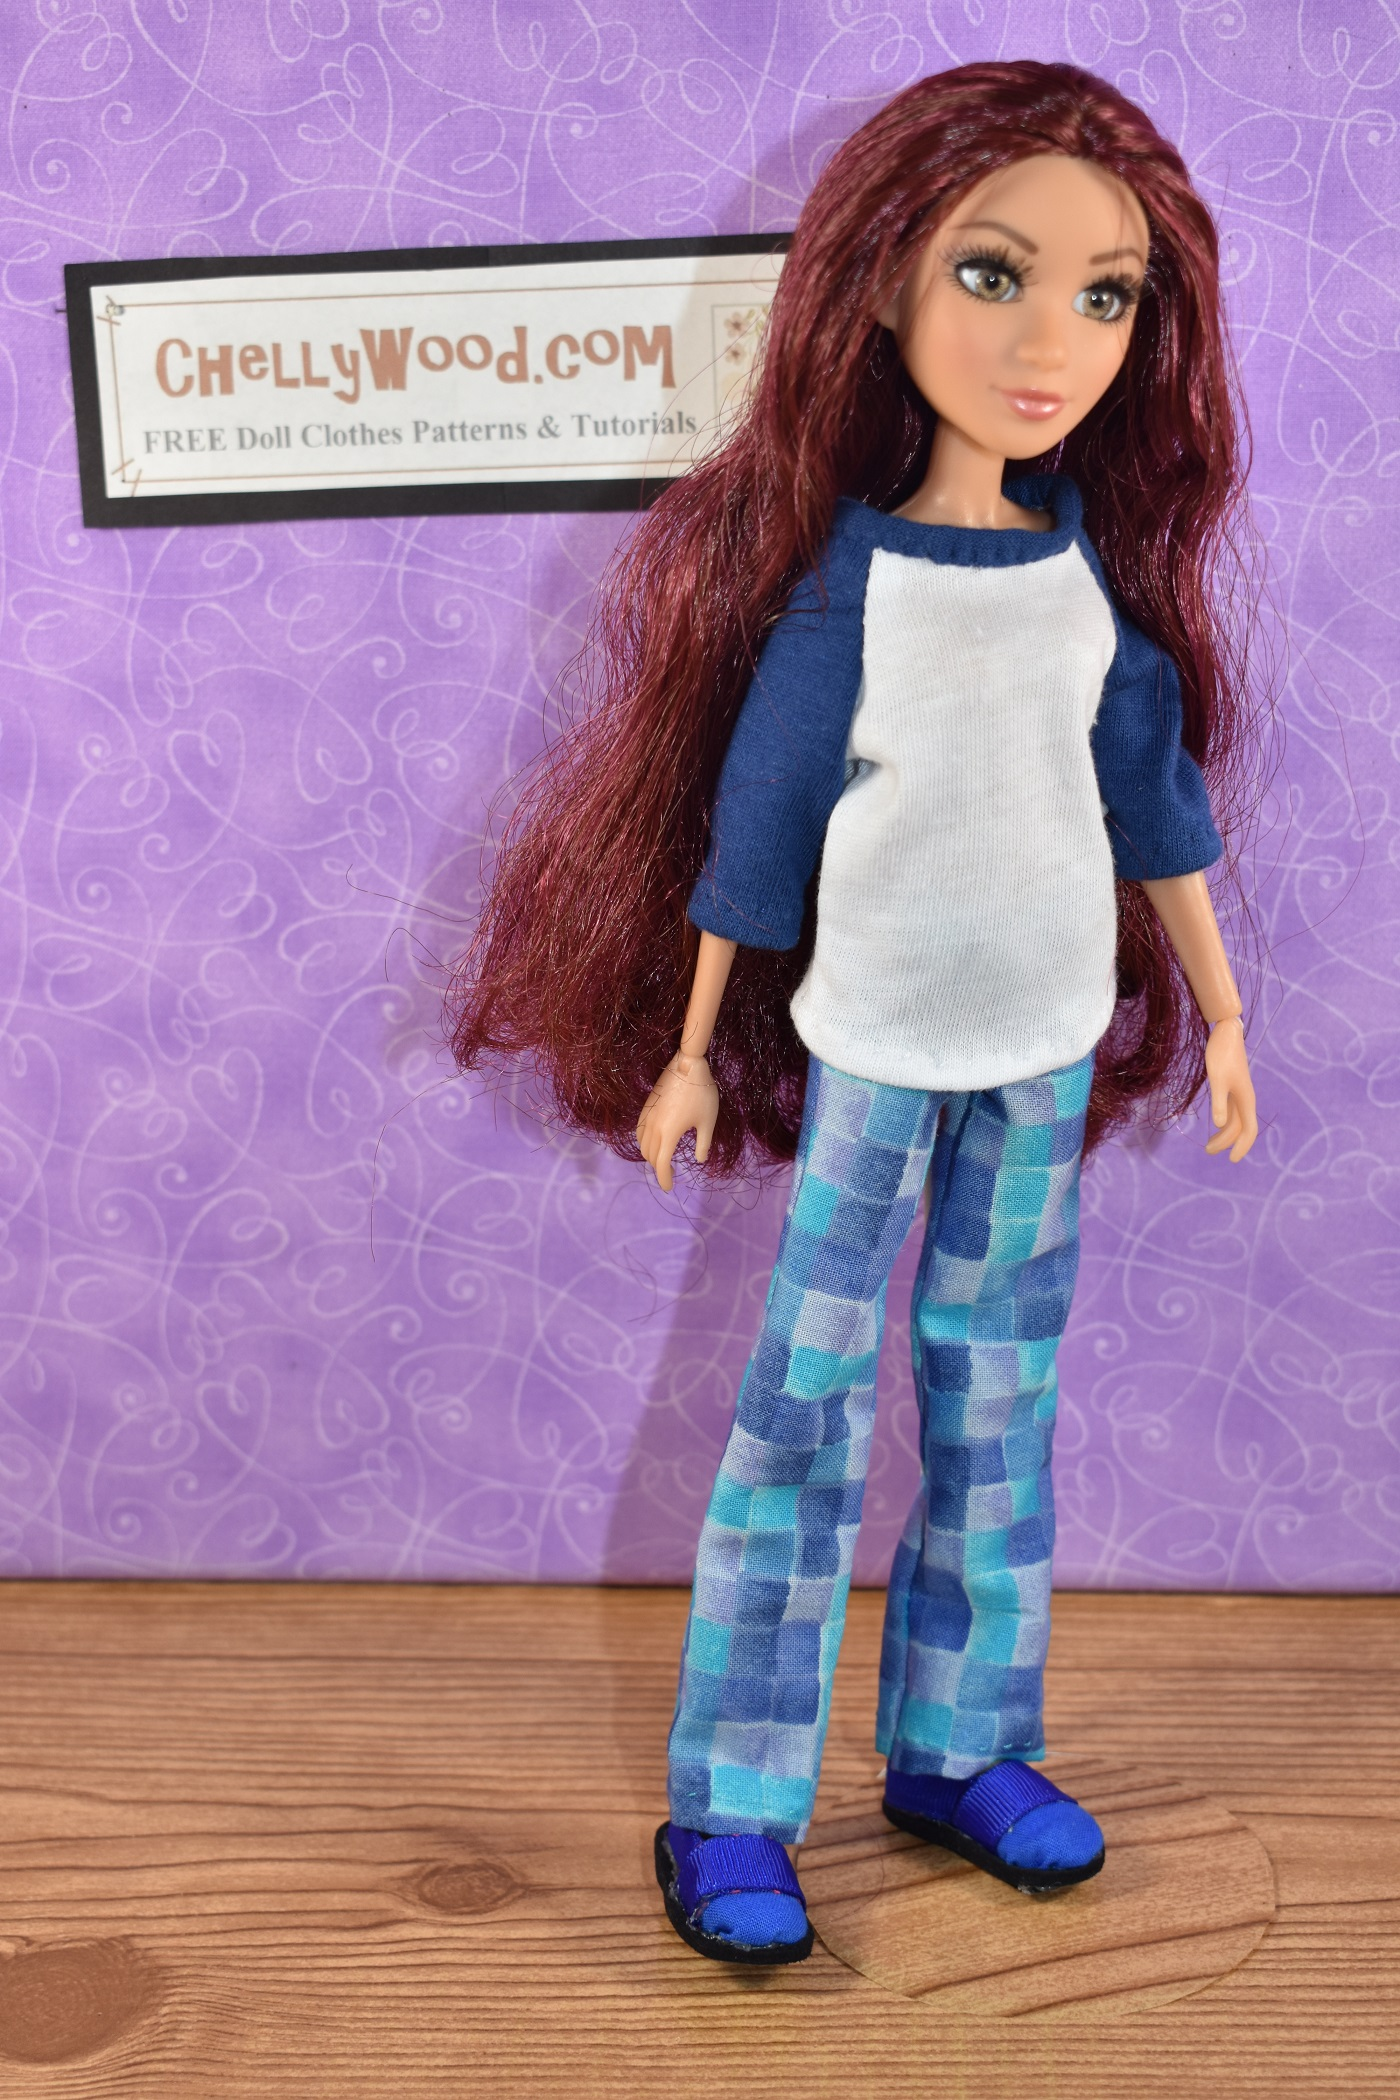 The image shows a Project MC2 Camryn Coyle doll wearing handmade pants and a handmade tee shirt (T-shirt) with the website ChellyWood.com hung on the wall behind her. If you'd like to download and print the free PDF sewing patterns for making these doll clothes to fit your Project MC squared dolls, please click in the link provided in the caption.